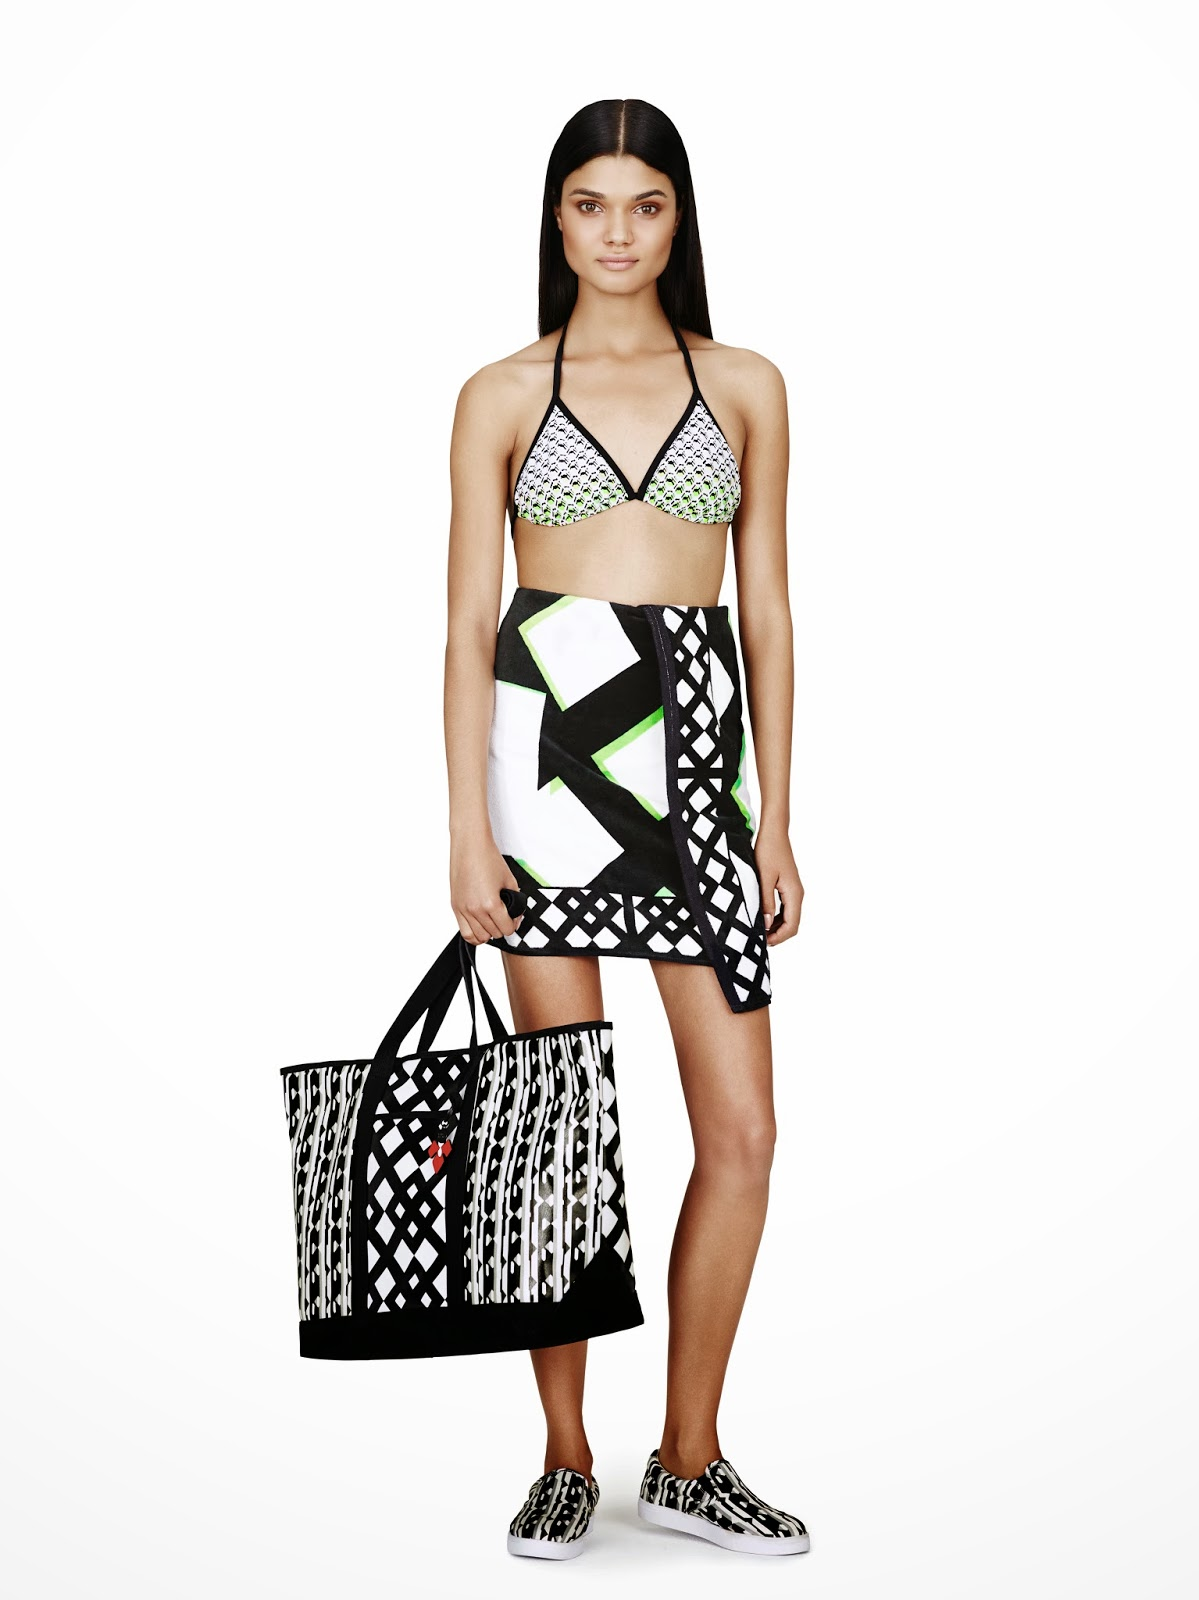 Peter-Pilotto-Target, black-and-white, swimwear, Spring-Summer-2014